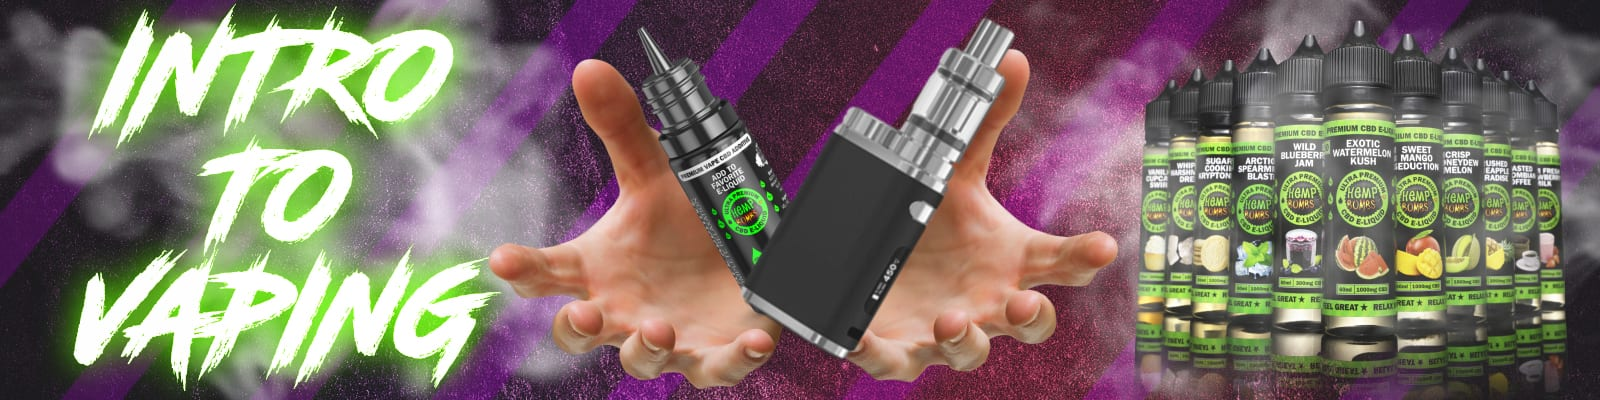 Intro to Vaping